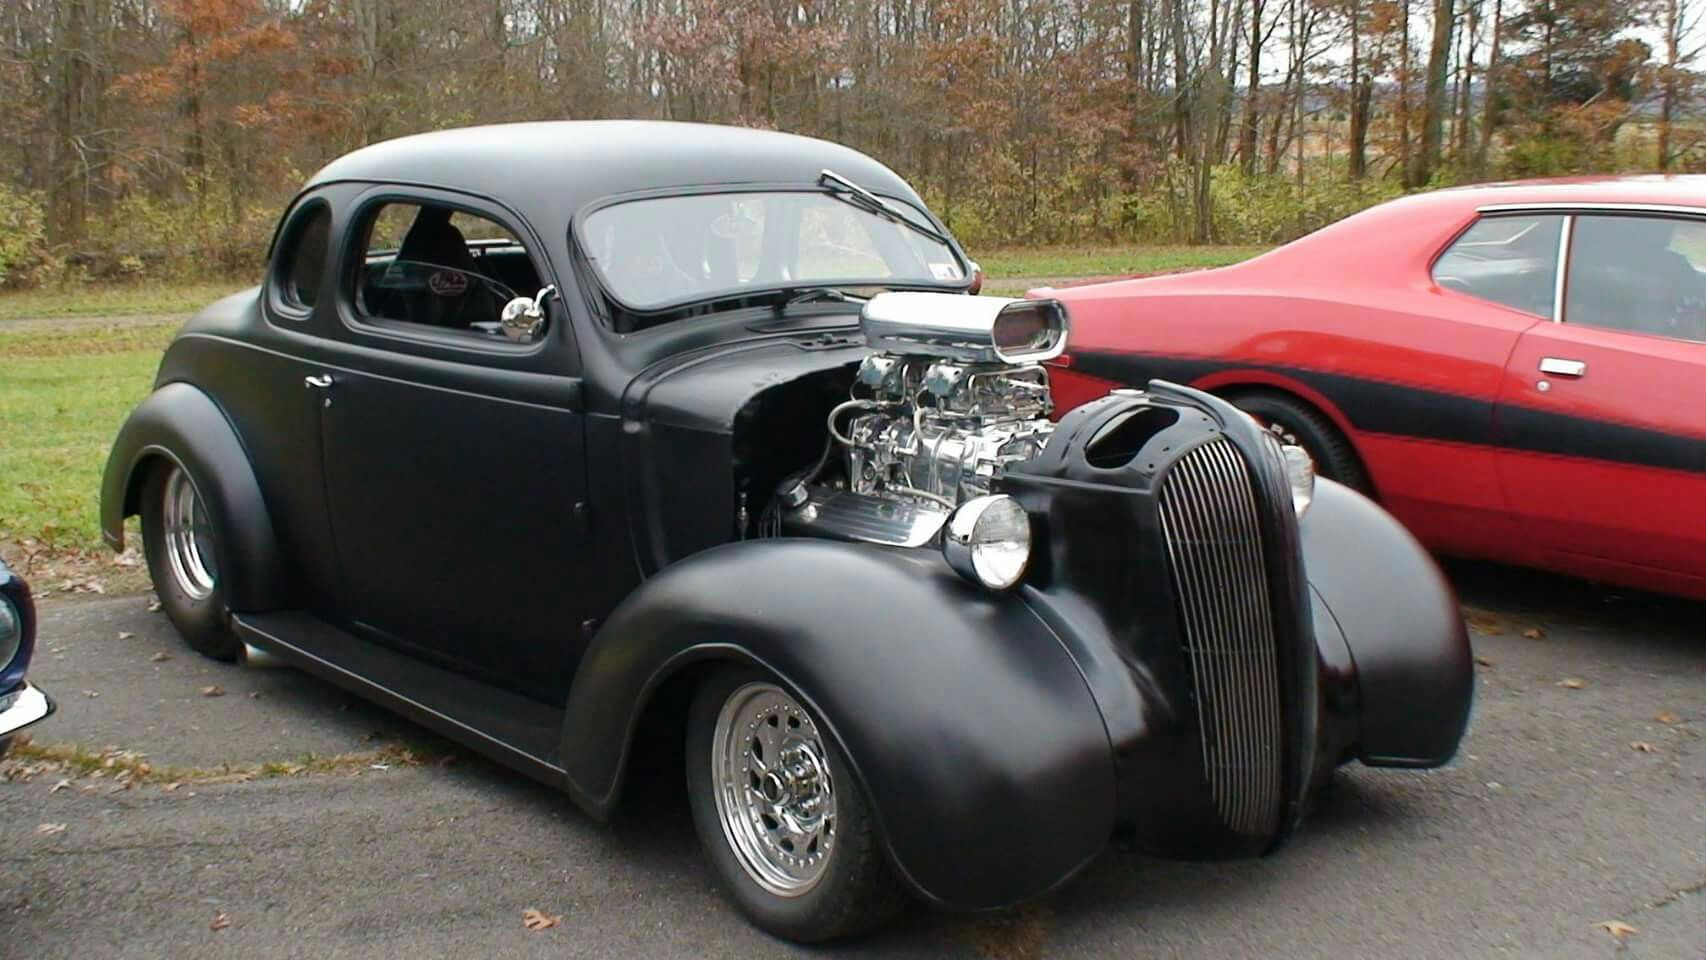 Drag cars, Antique cars, Old school